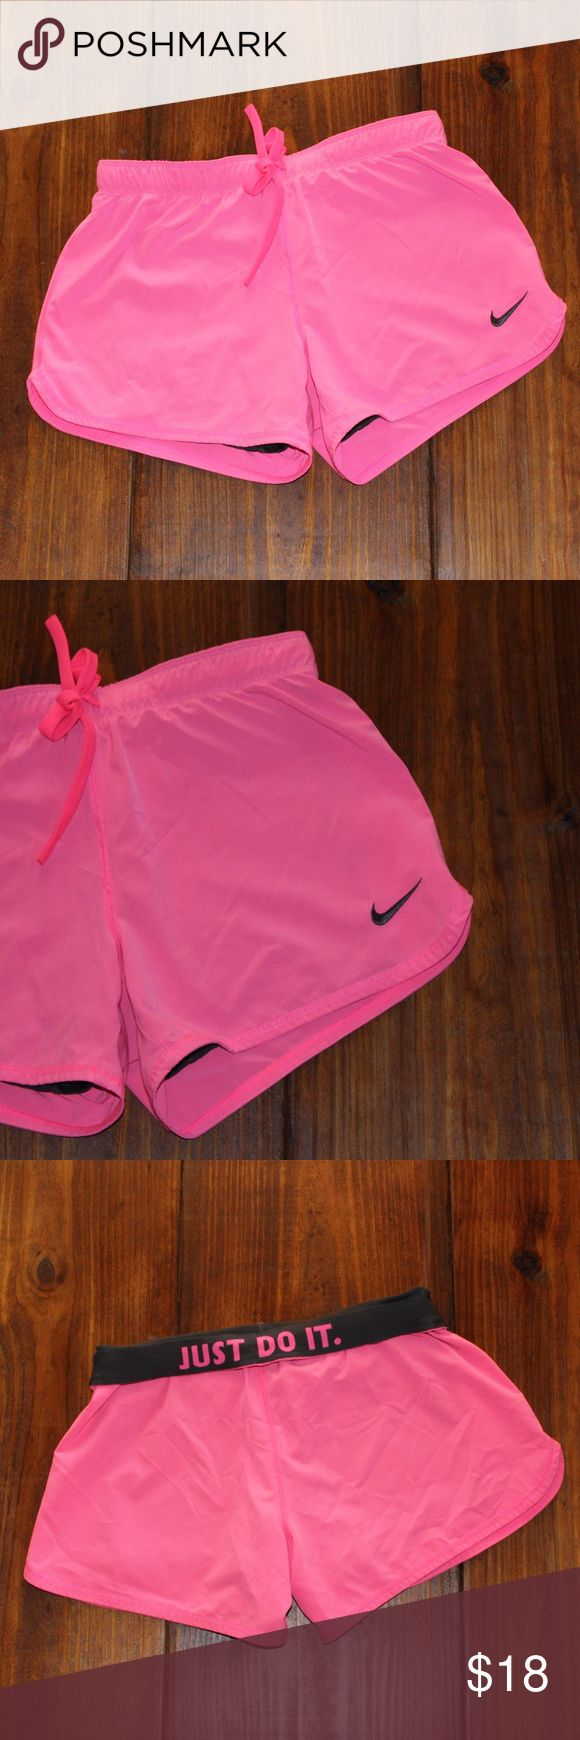 Nike   Women's Pink Phantom 2-in-1 Shorts Women's pink and gray Phantom 2-in-1 shorts, size S. A compressive inner short and woven outer layer combine for all-in-one enhancing design. An elastic waistband with draw cord allows for a personalized fit, and Dri-FIT technology wicks sweat for a cool feel. Move comfortably through your next workout in these Phantom 2-in-1 shorts. This item is in excellent used condition with little to no signs of wash or wear.  grey drifit Nike Shorts